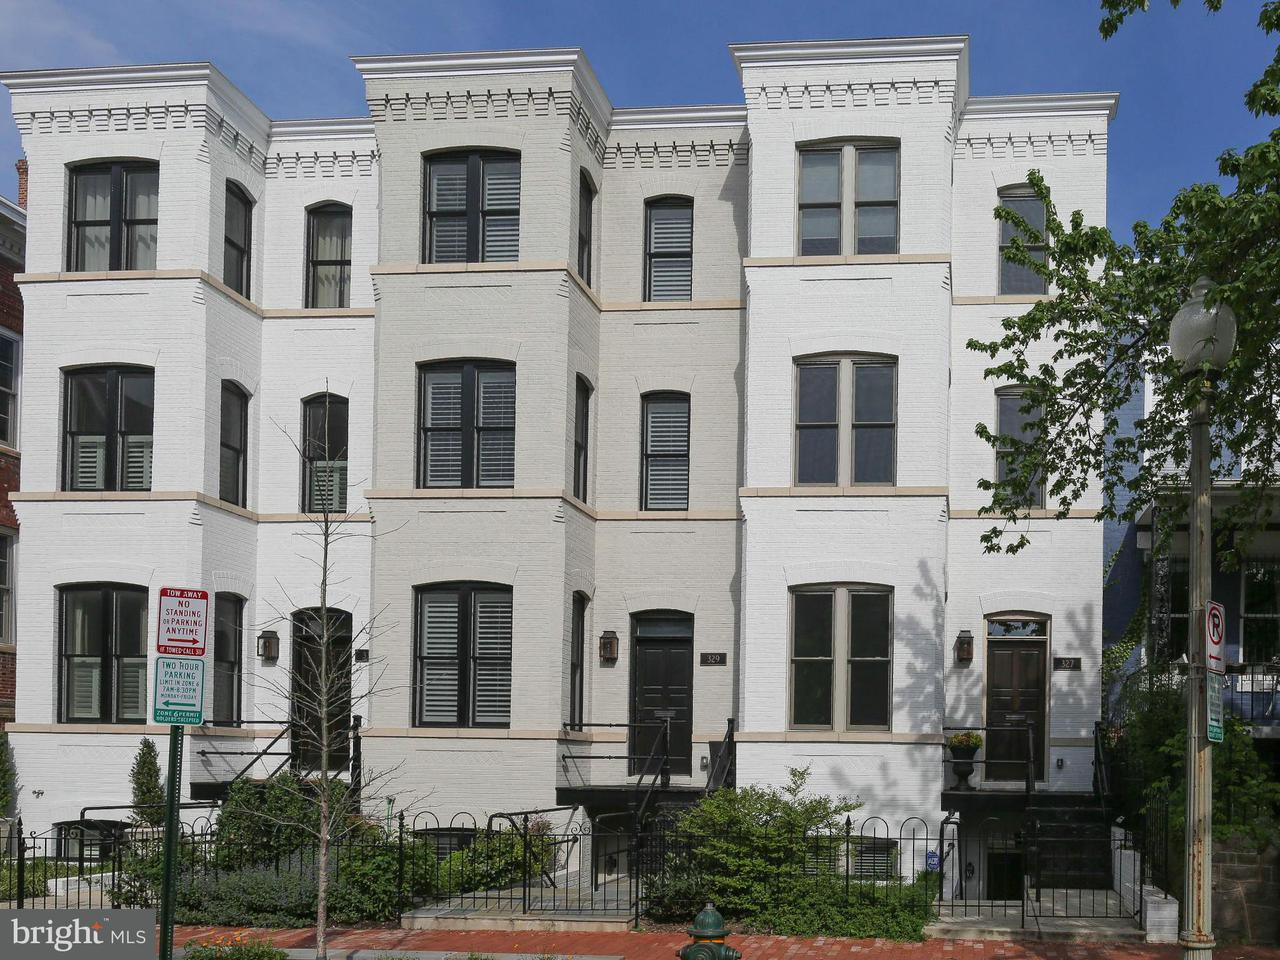 Townhouse for Sale at 327 9th St Ne 327 9th St Ne Washington, District Of Columbia 20002 United States